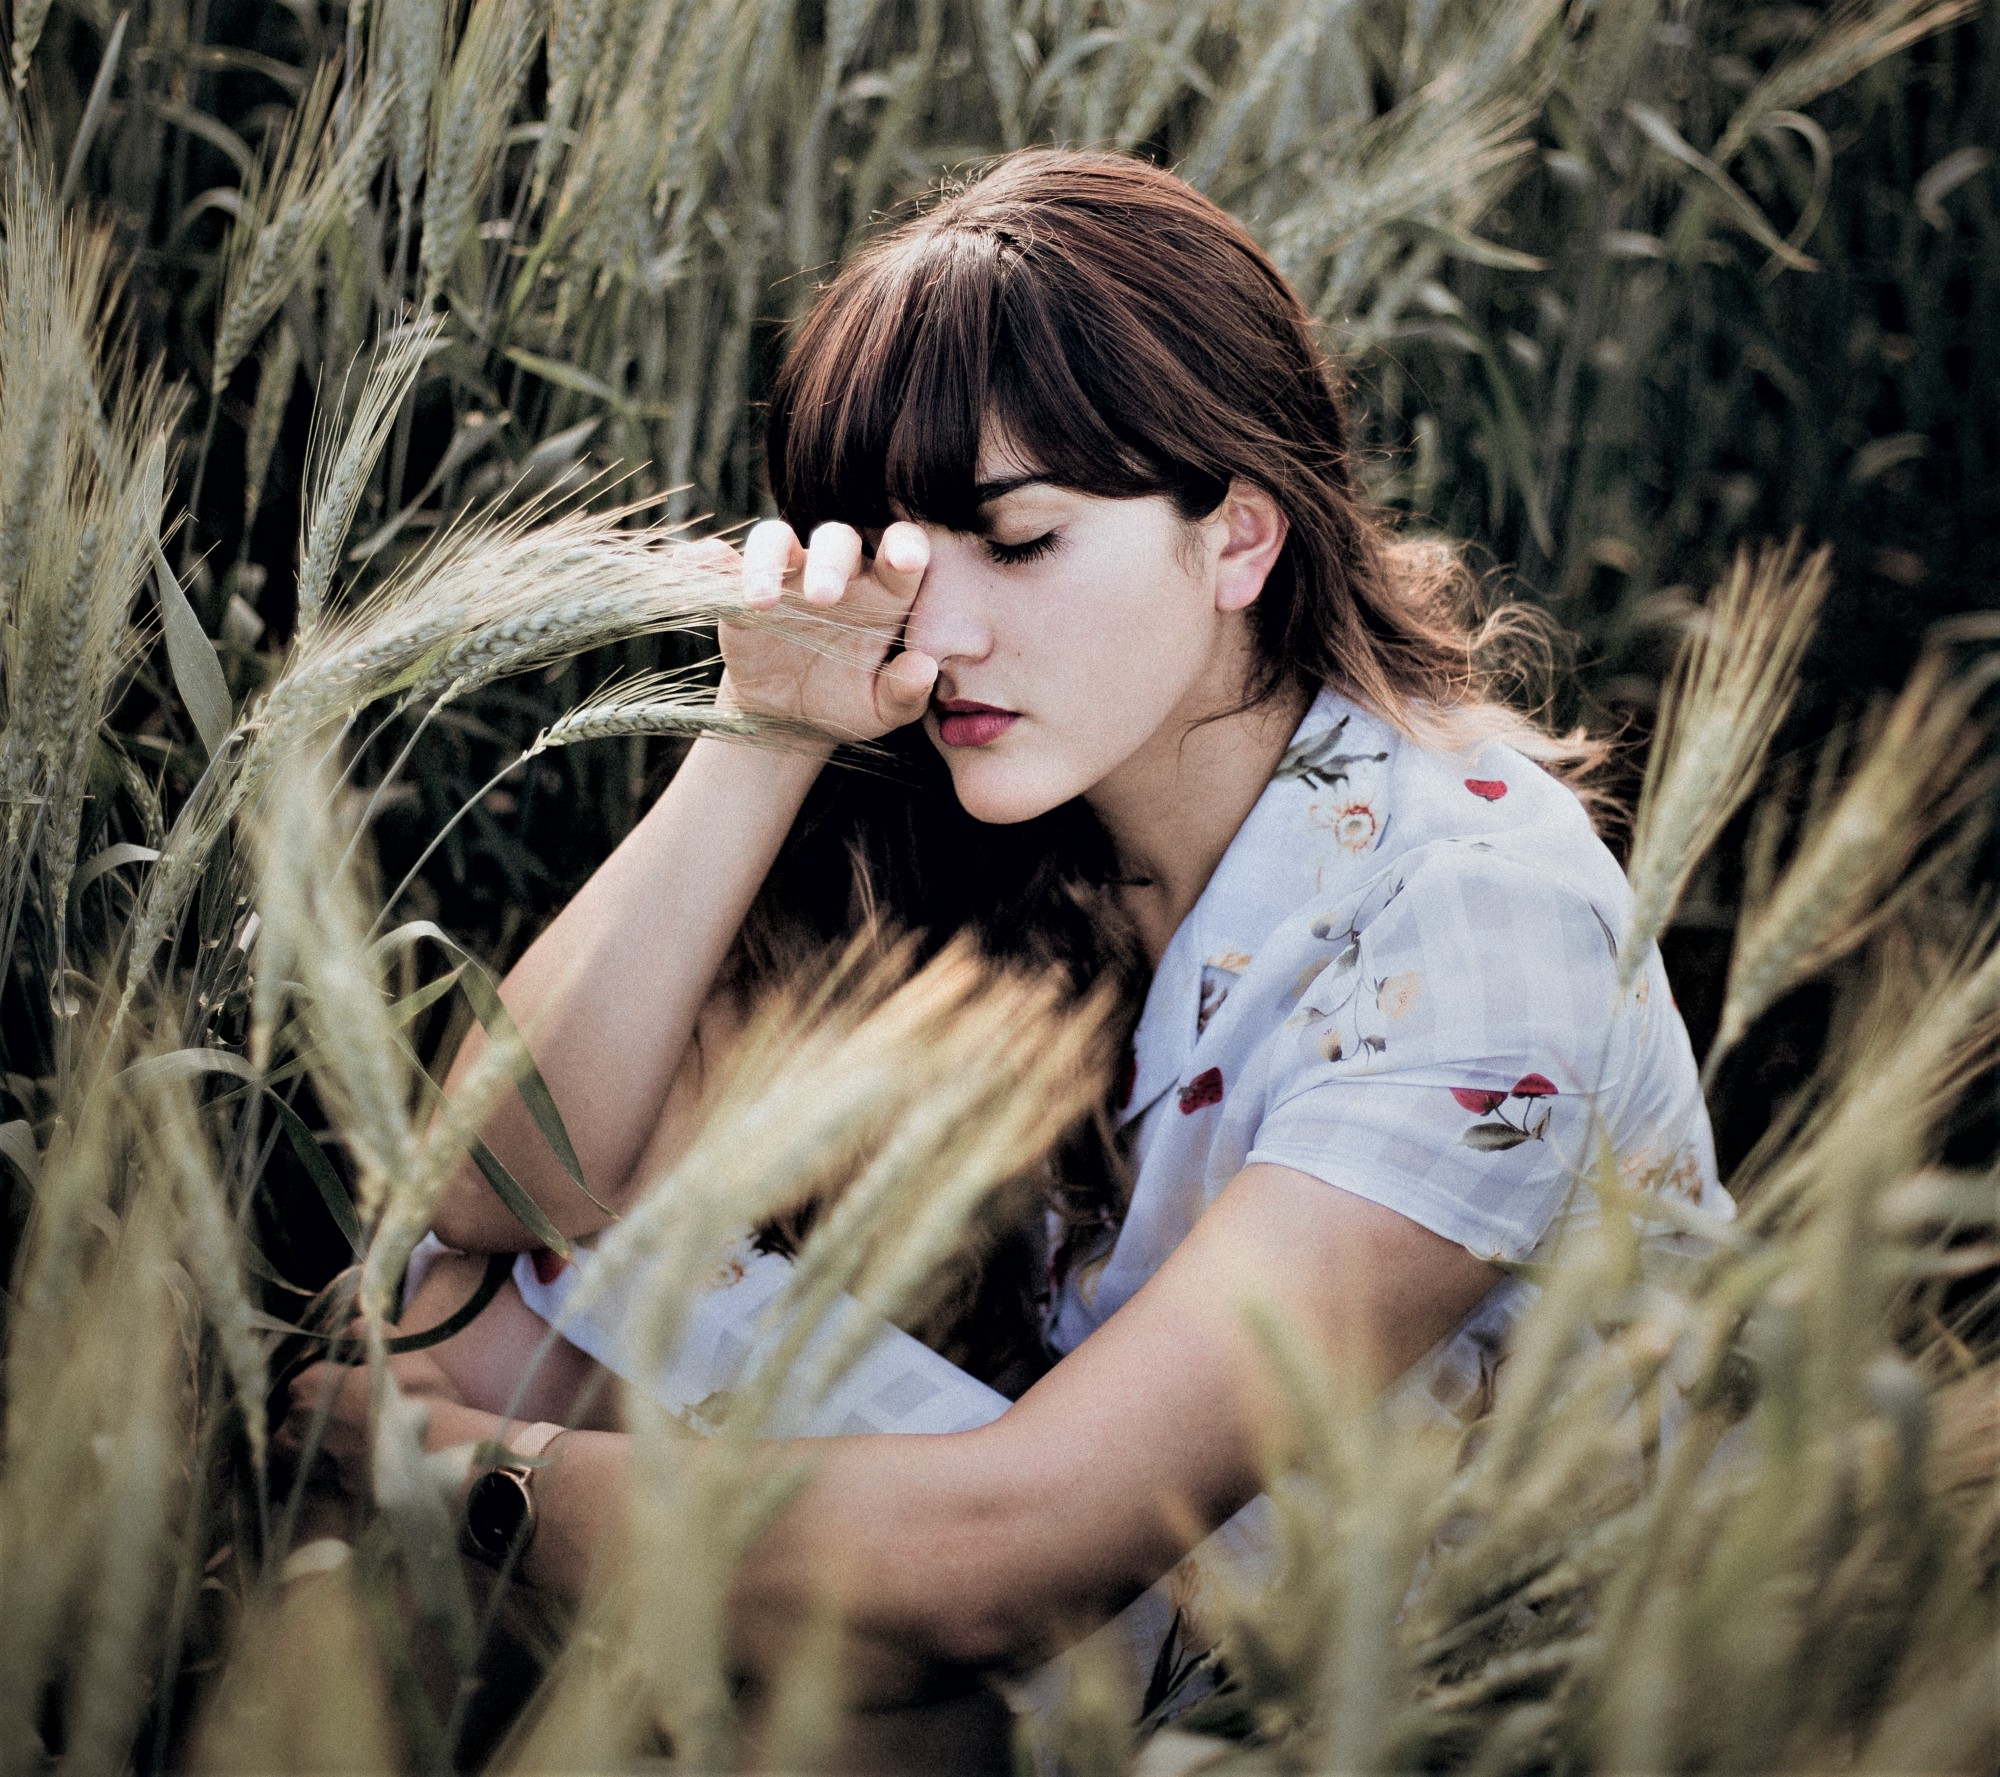 thoughtful girl with brown hair holding hand to her face sitting in field of wheat